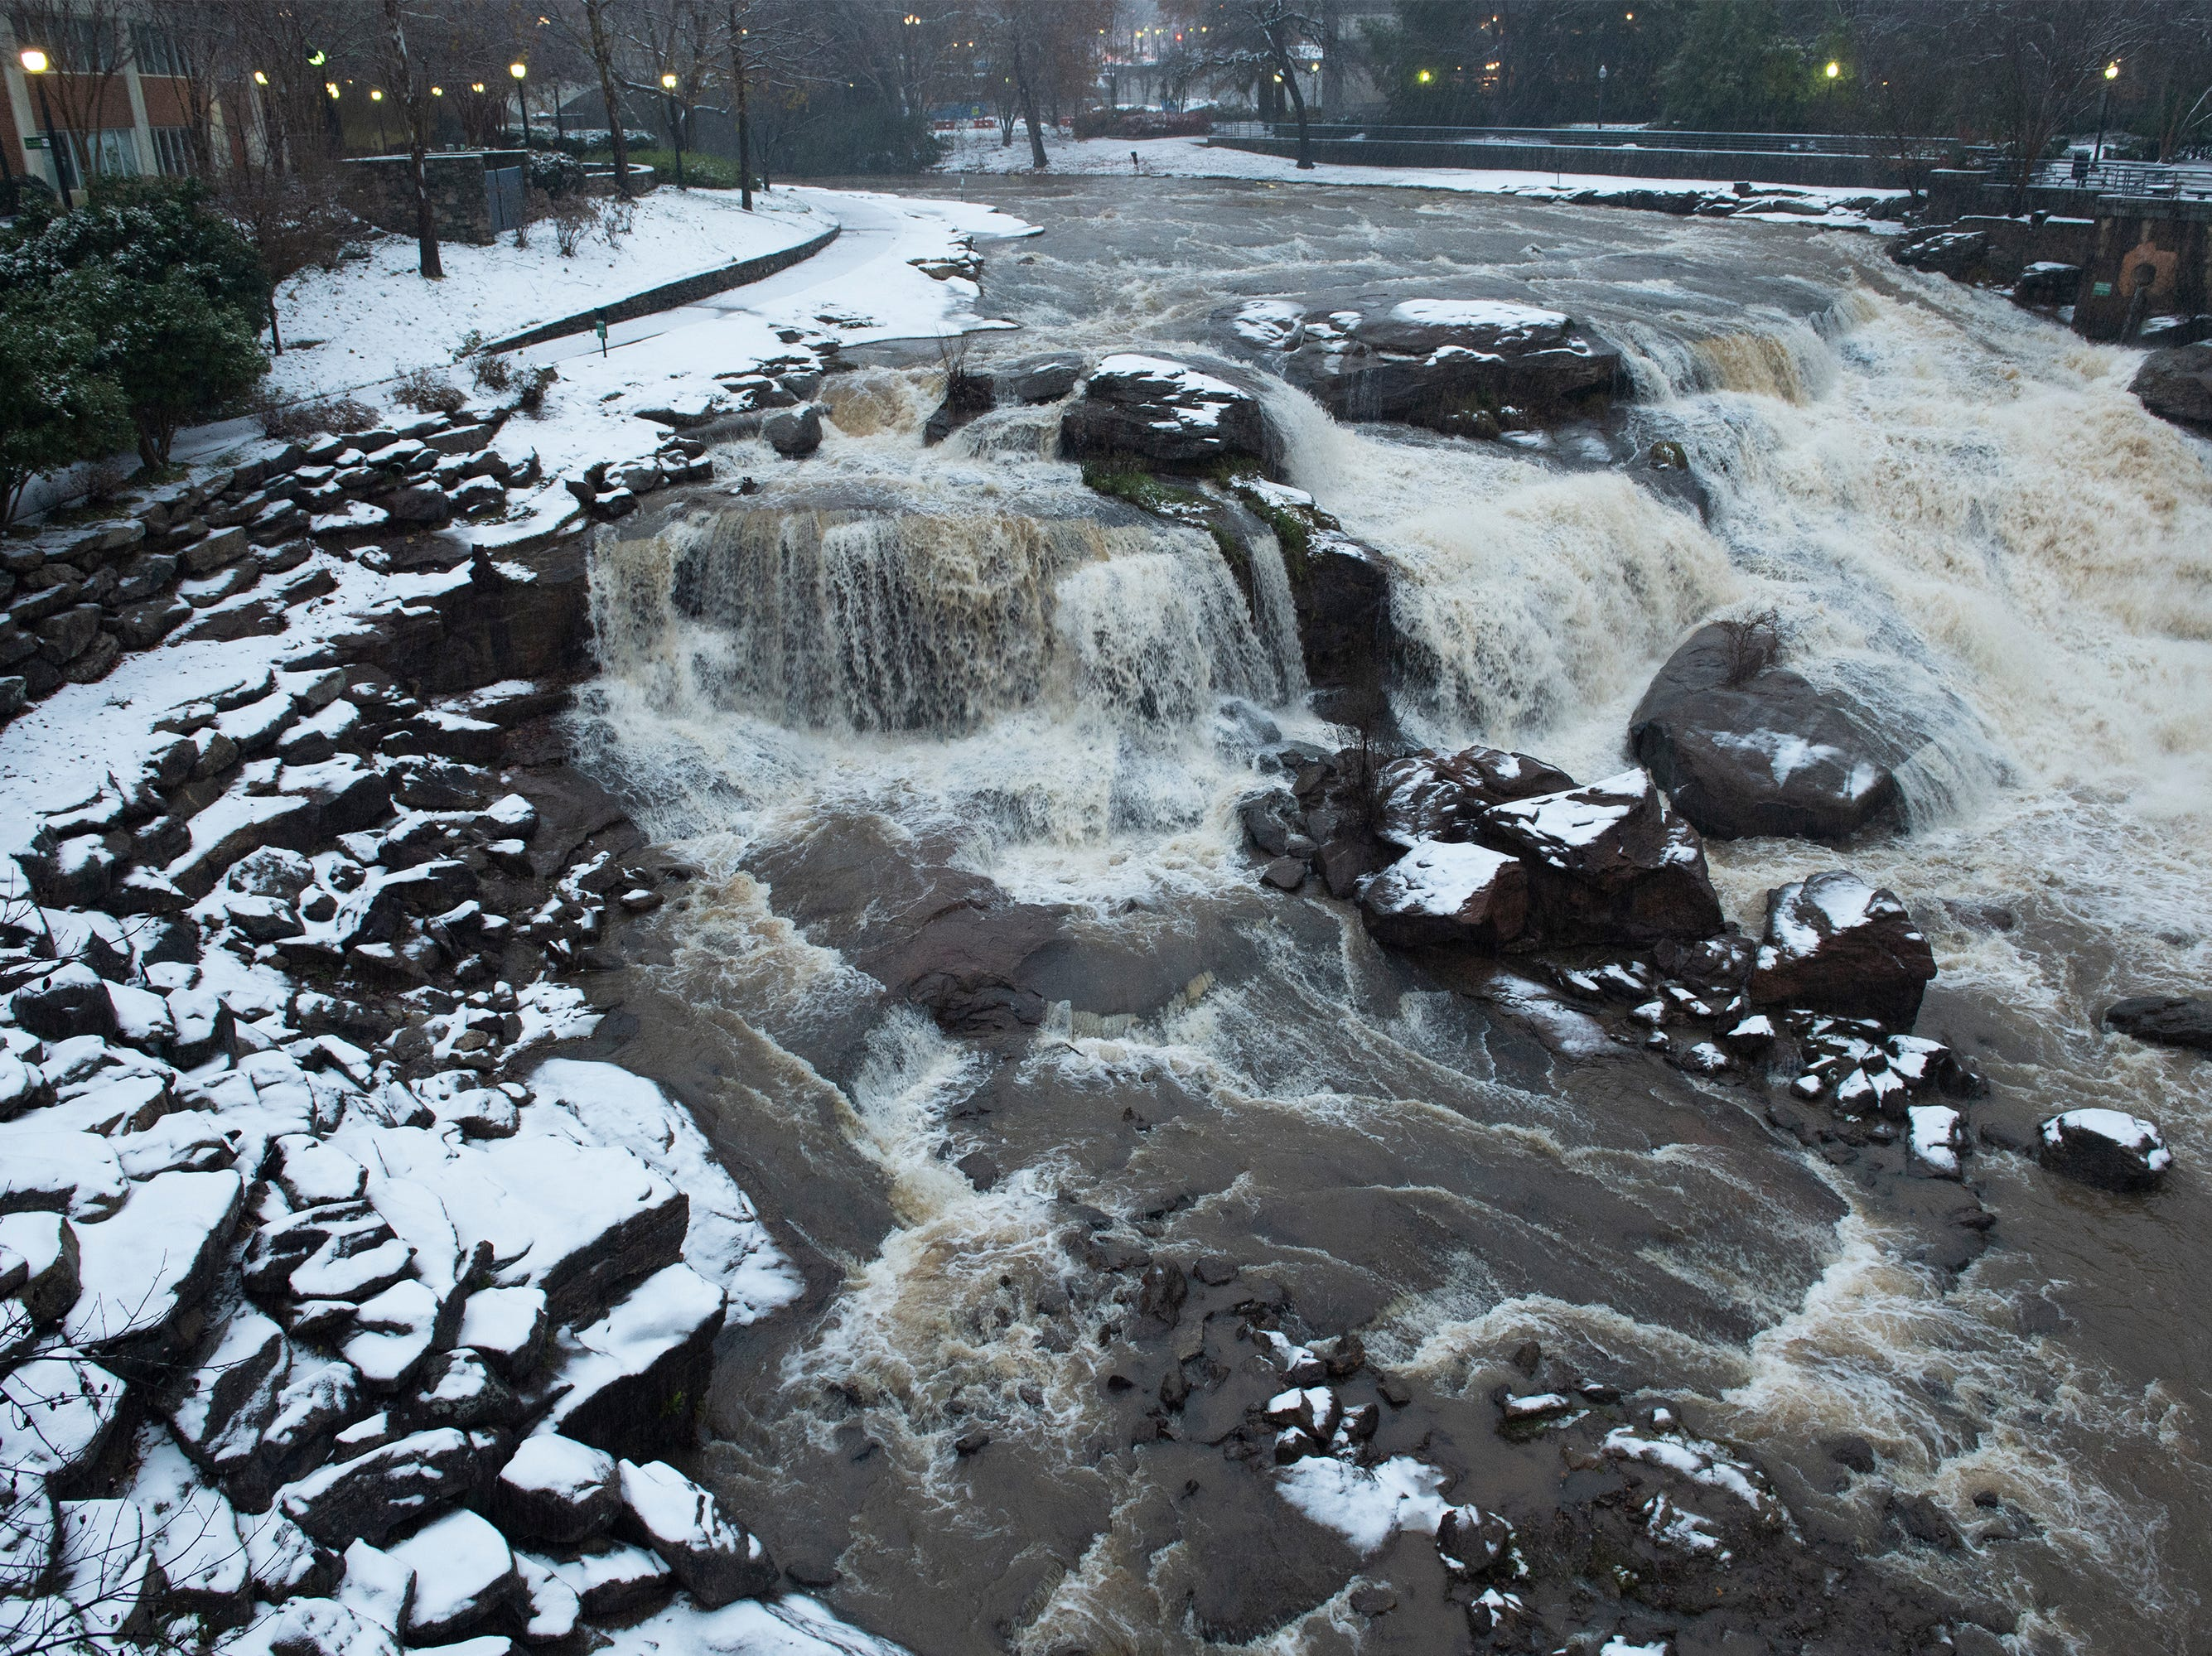 An icy mix falls at Falls Park on the Reddy Sunday, Dec. 09, 2018.